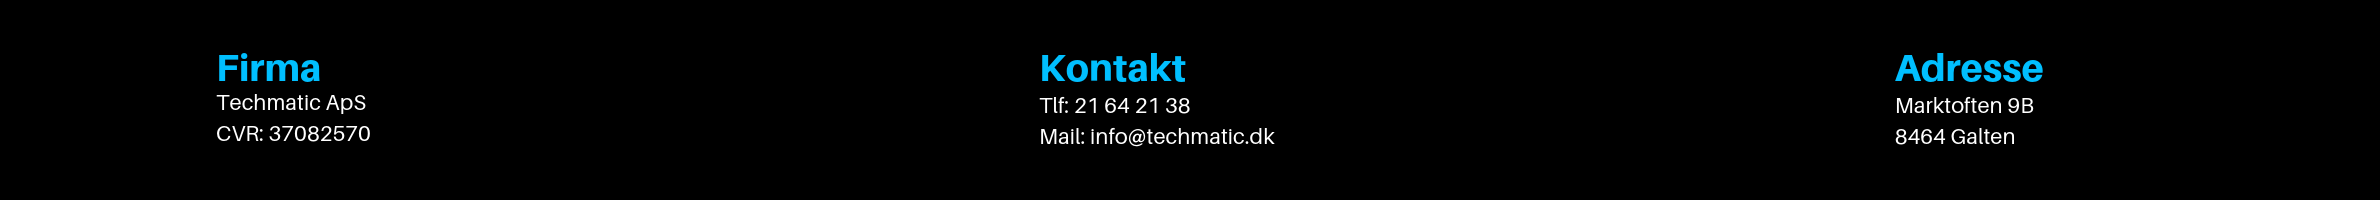 Tlf_ 21 64 21 38 Mail_ infotechmaticdk 1png